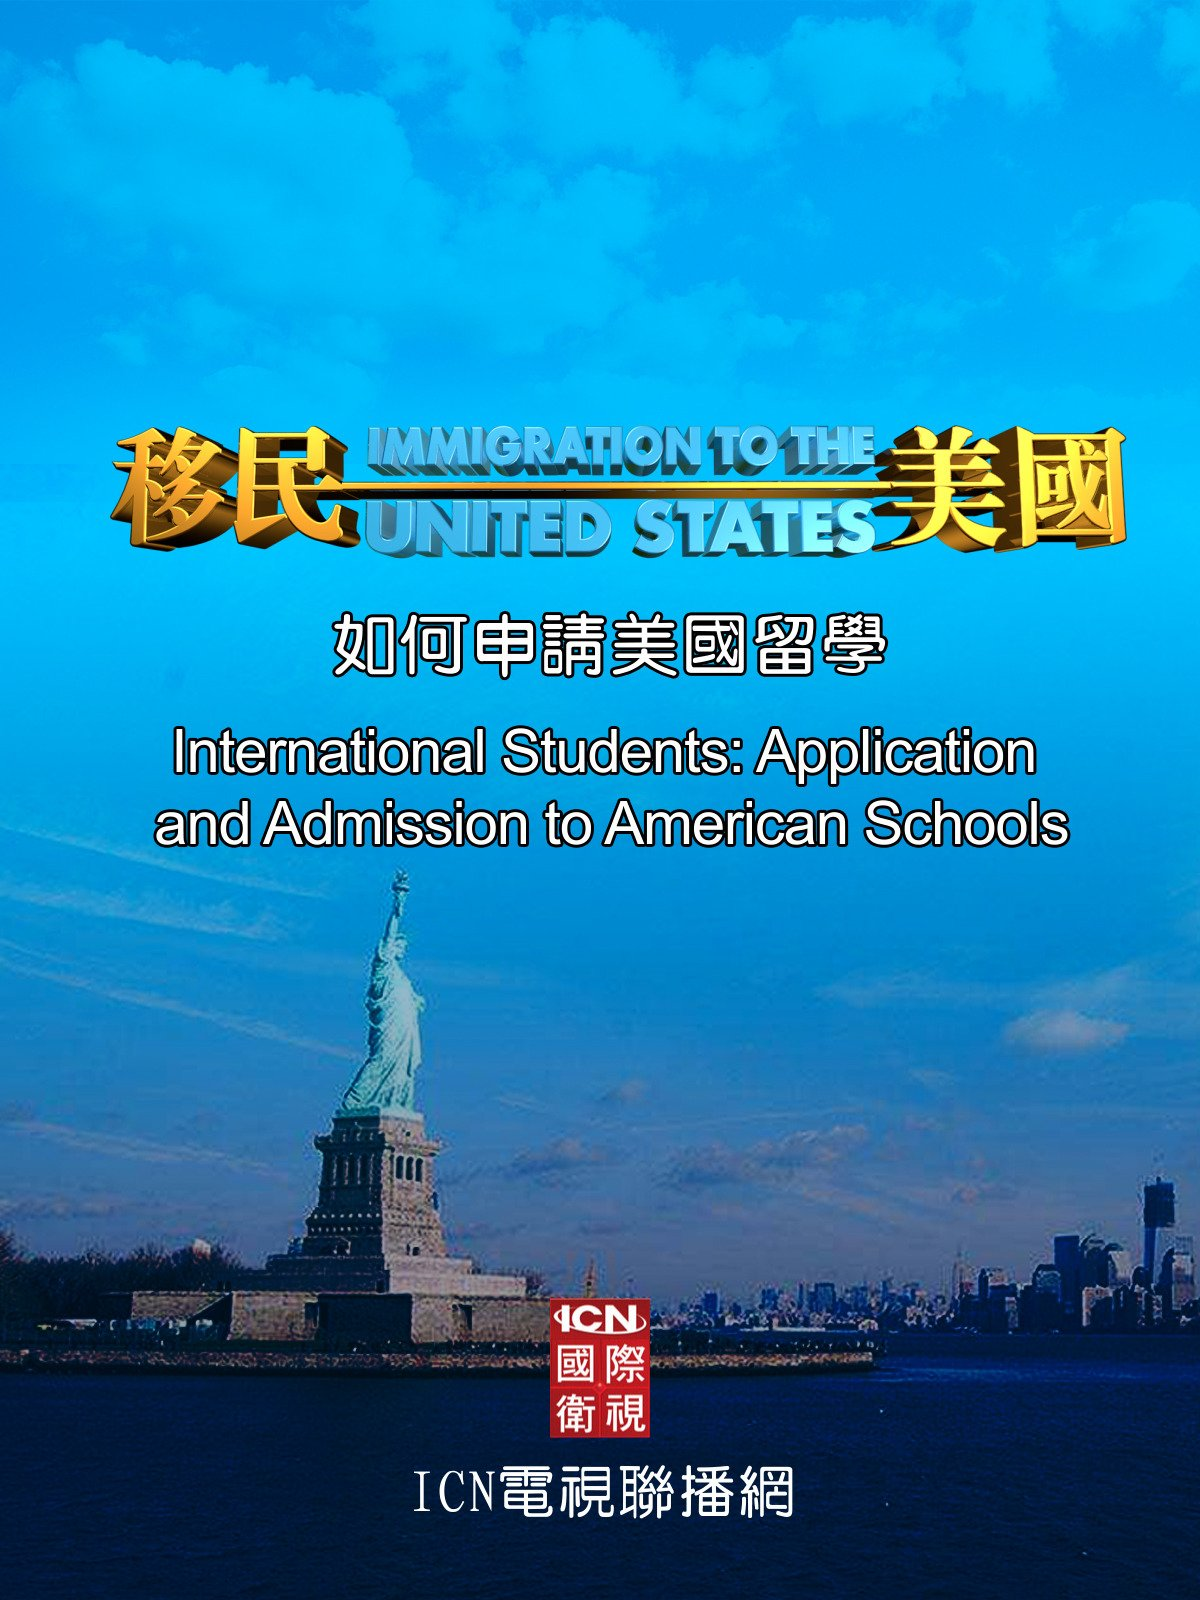 International Students: Application and Admission to American Schools